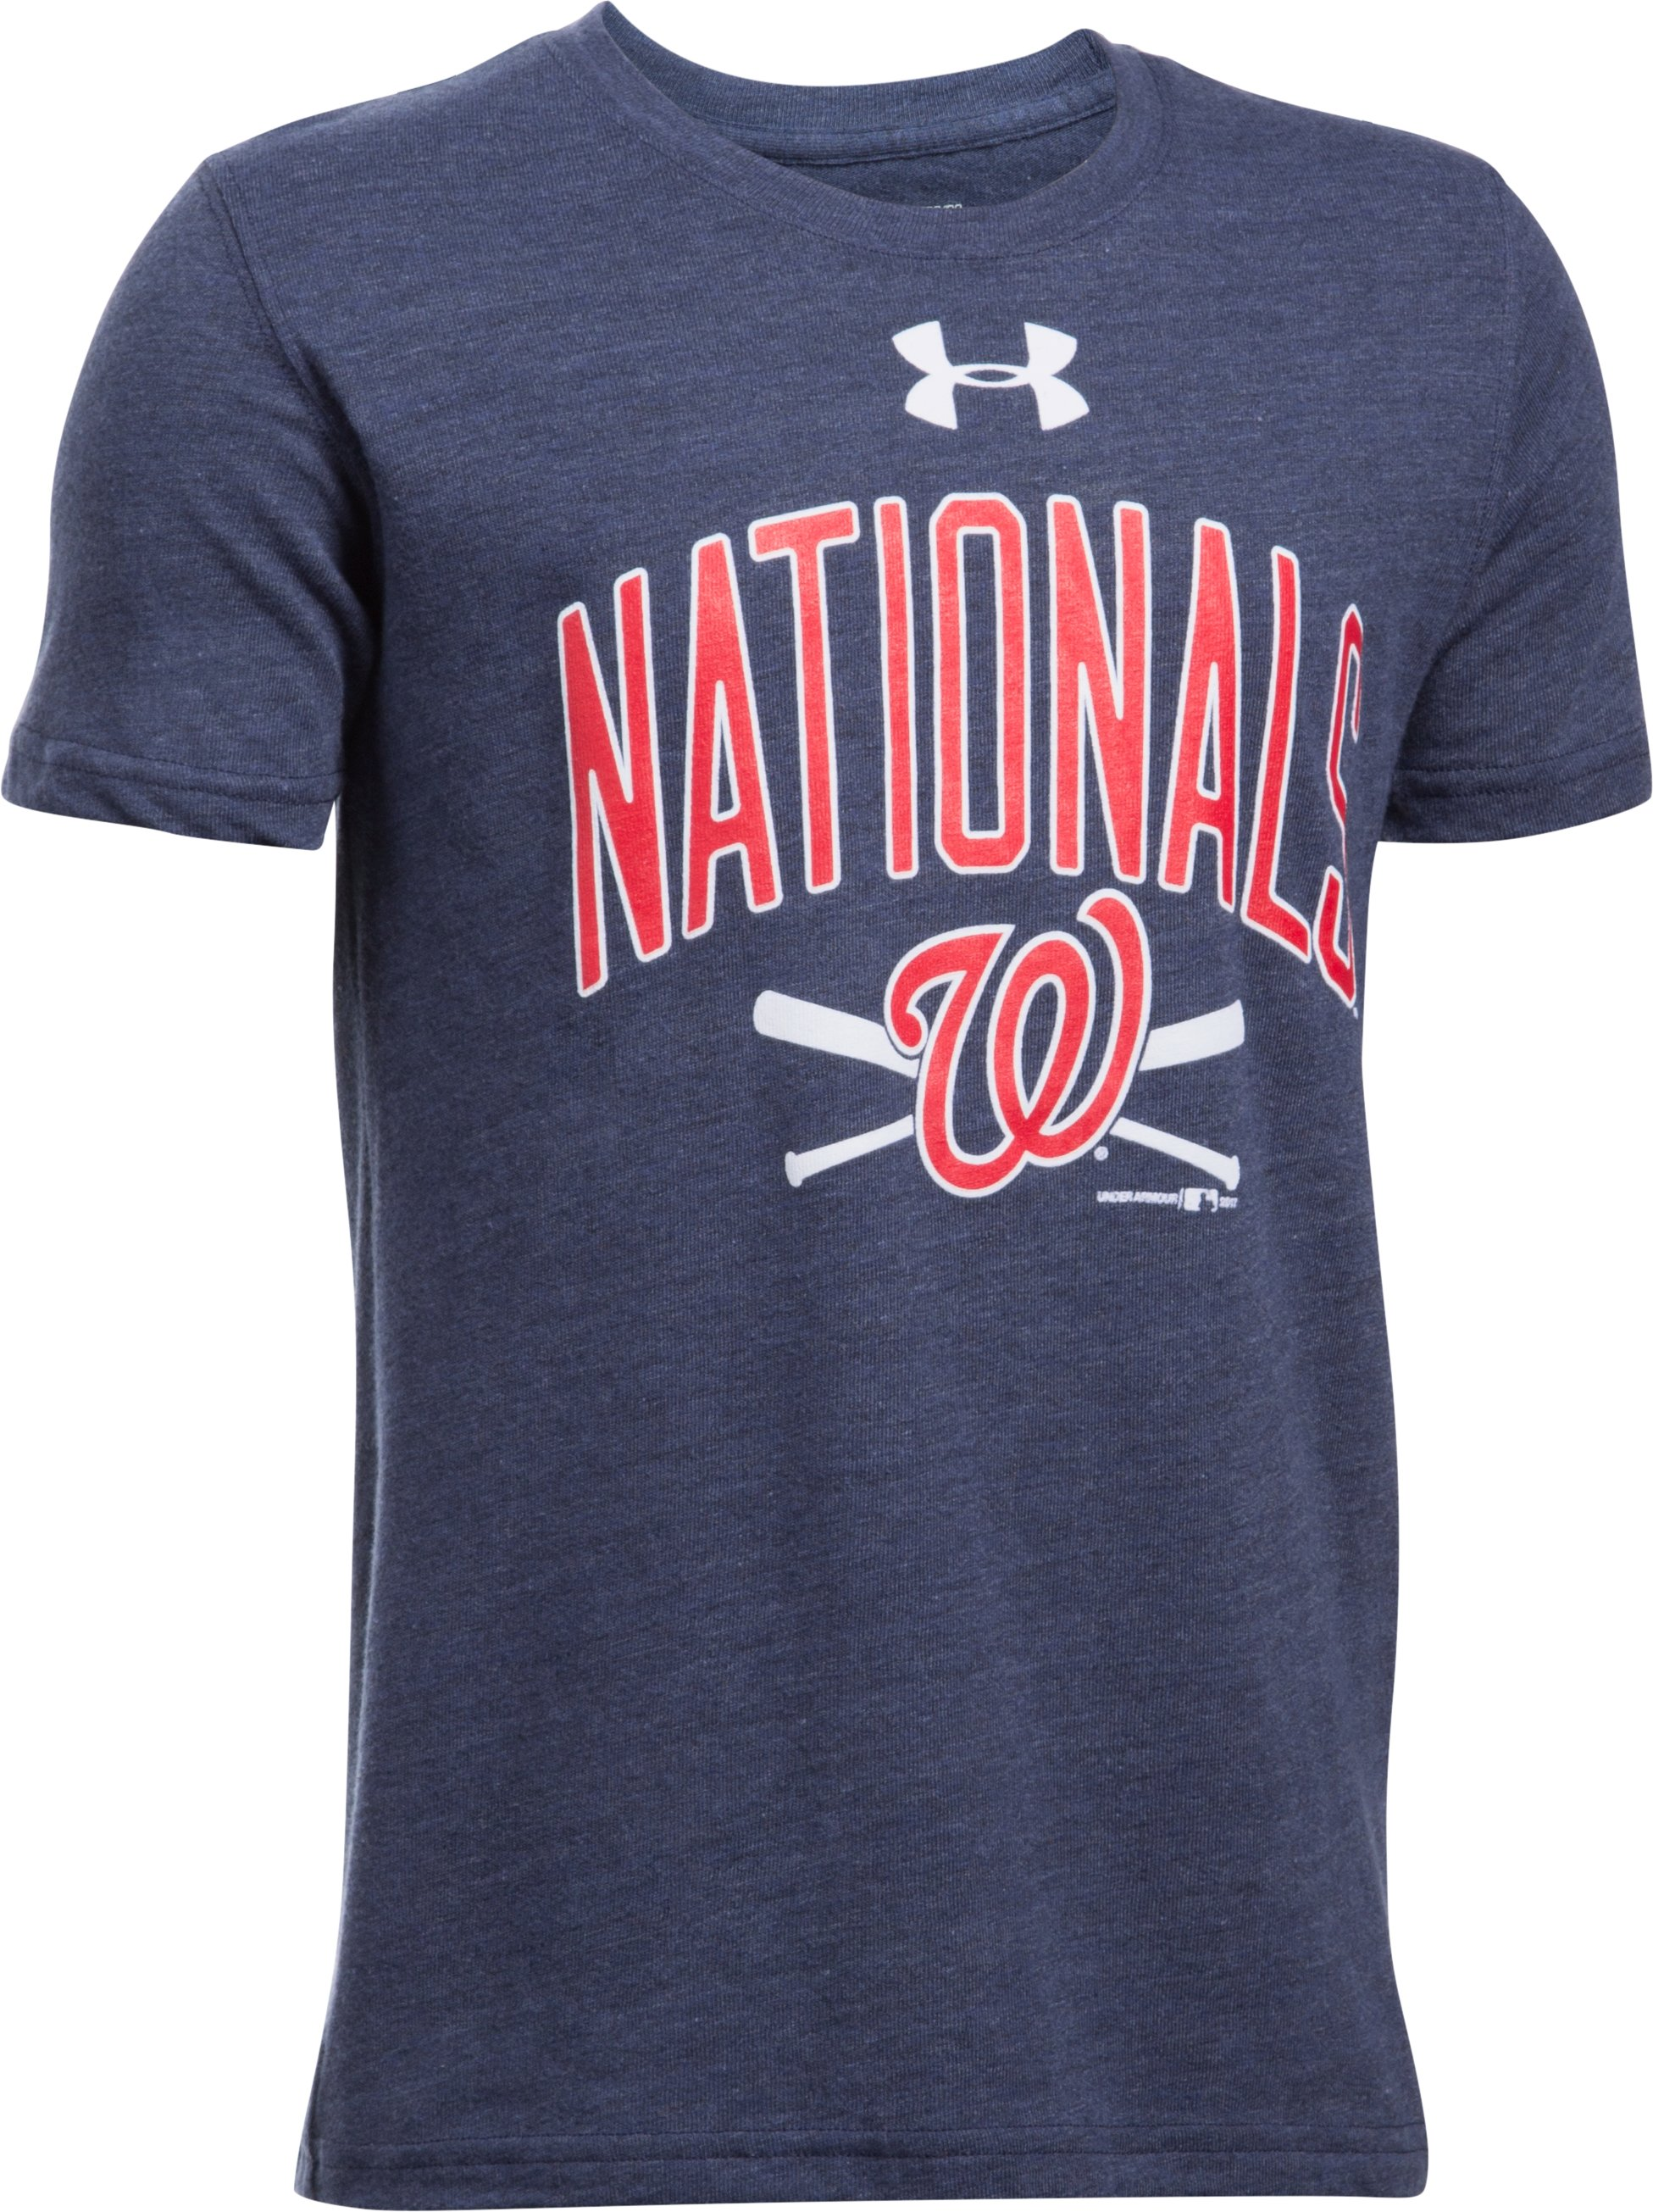 Boys' Washington Nationals Tri-Blend T-Shirt, Midnight Navy, undefined